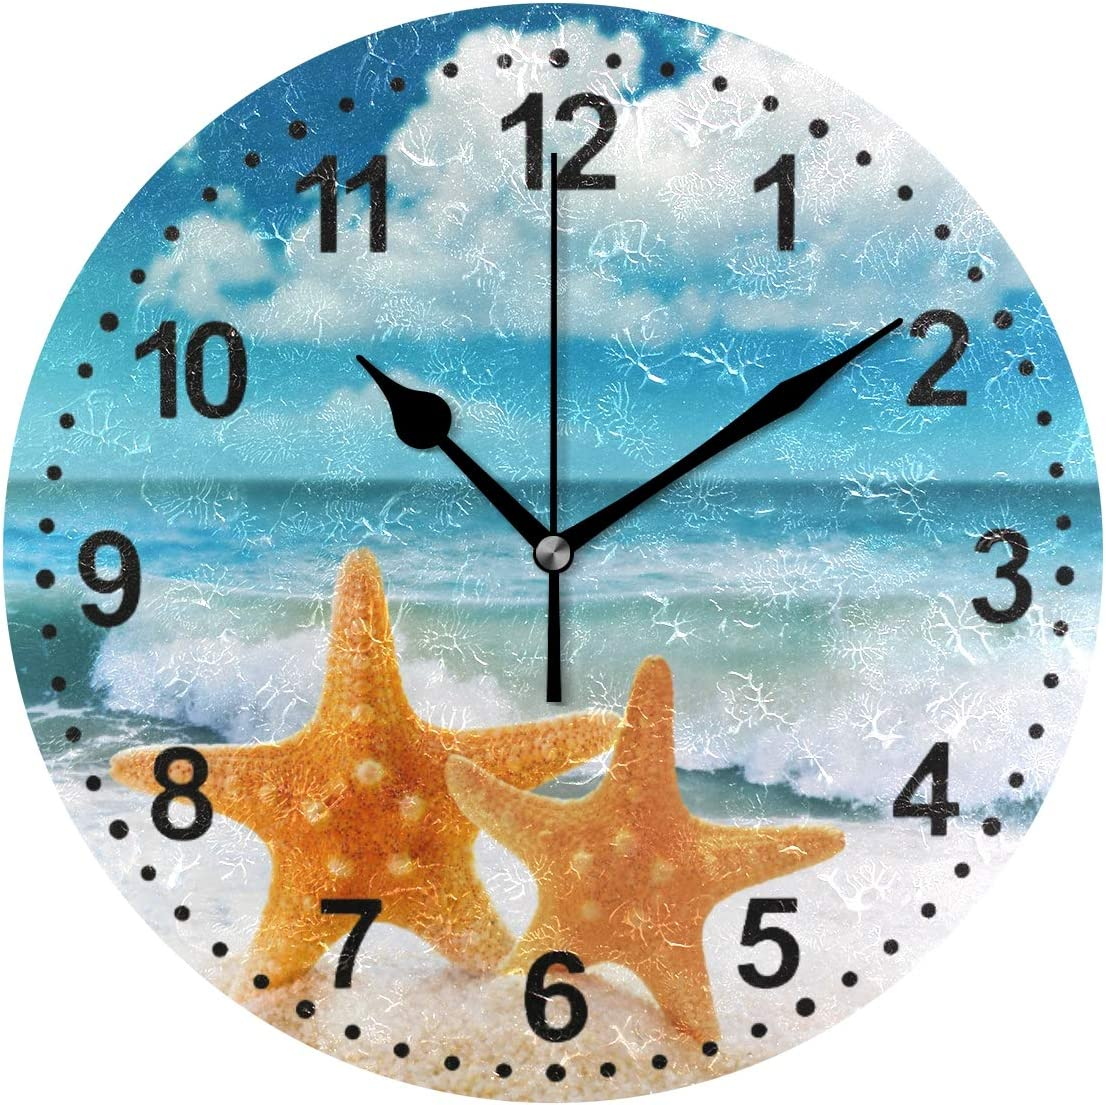 Decorative Wall Clocks For Living Room from images-na.ssl-images-amazon.com